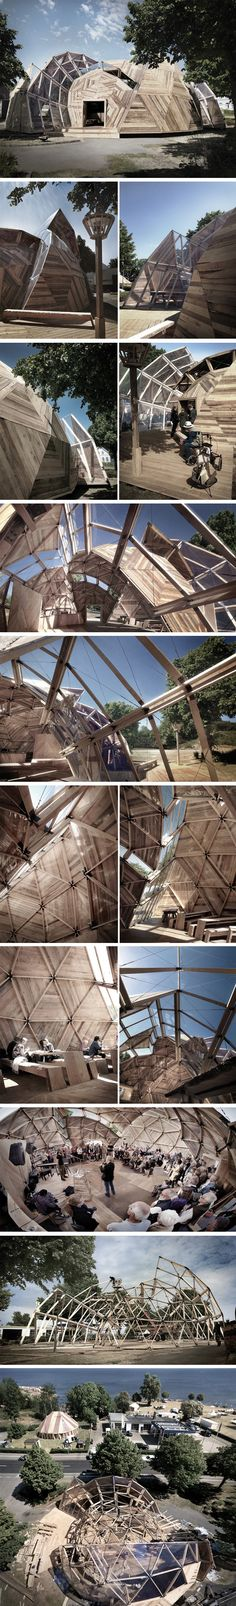 Incredible wooden geodesic dome. Peoples Meeting Dome par Kristoffer Tejlgaard & Benny Jepsen - Journal du Design